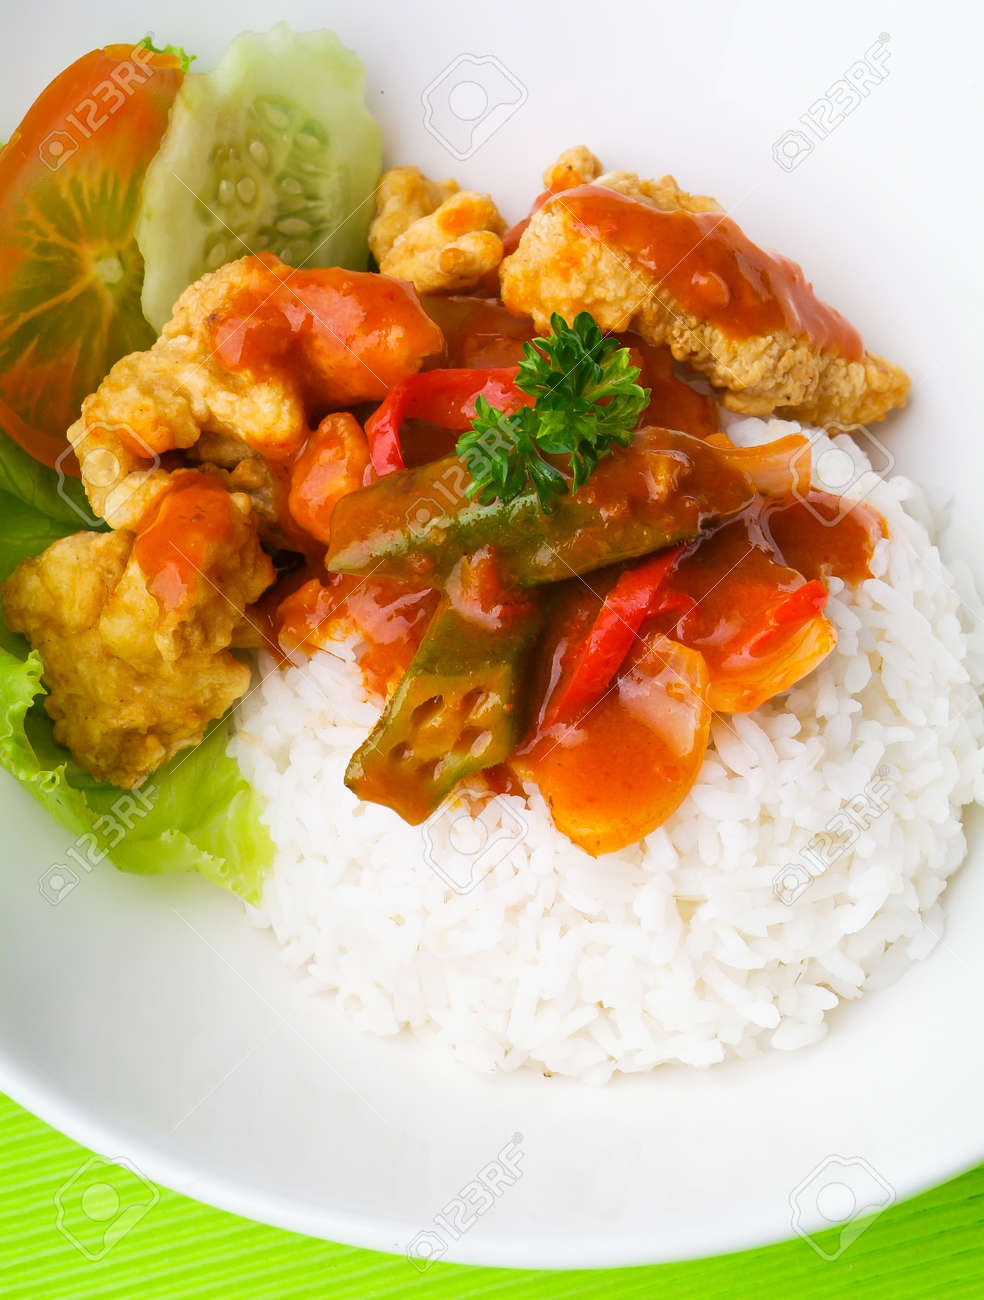 pork sweet and sour pork saia food. Stock Photo - 14910779